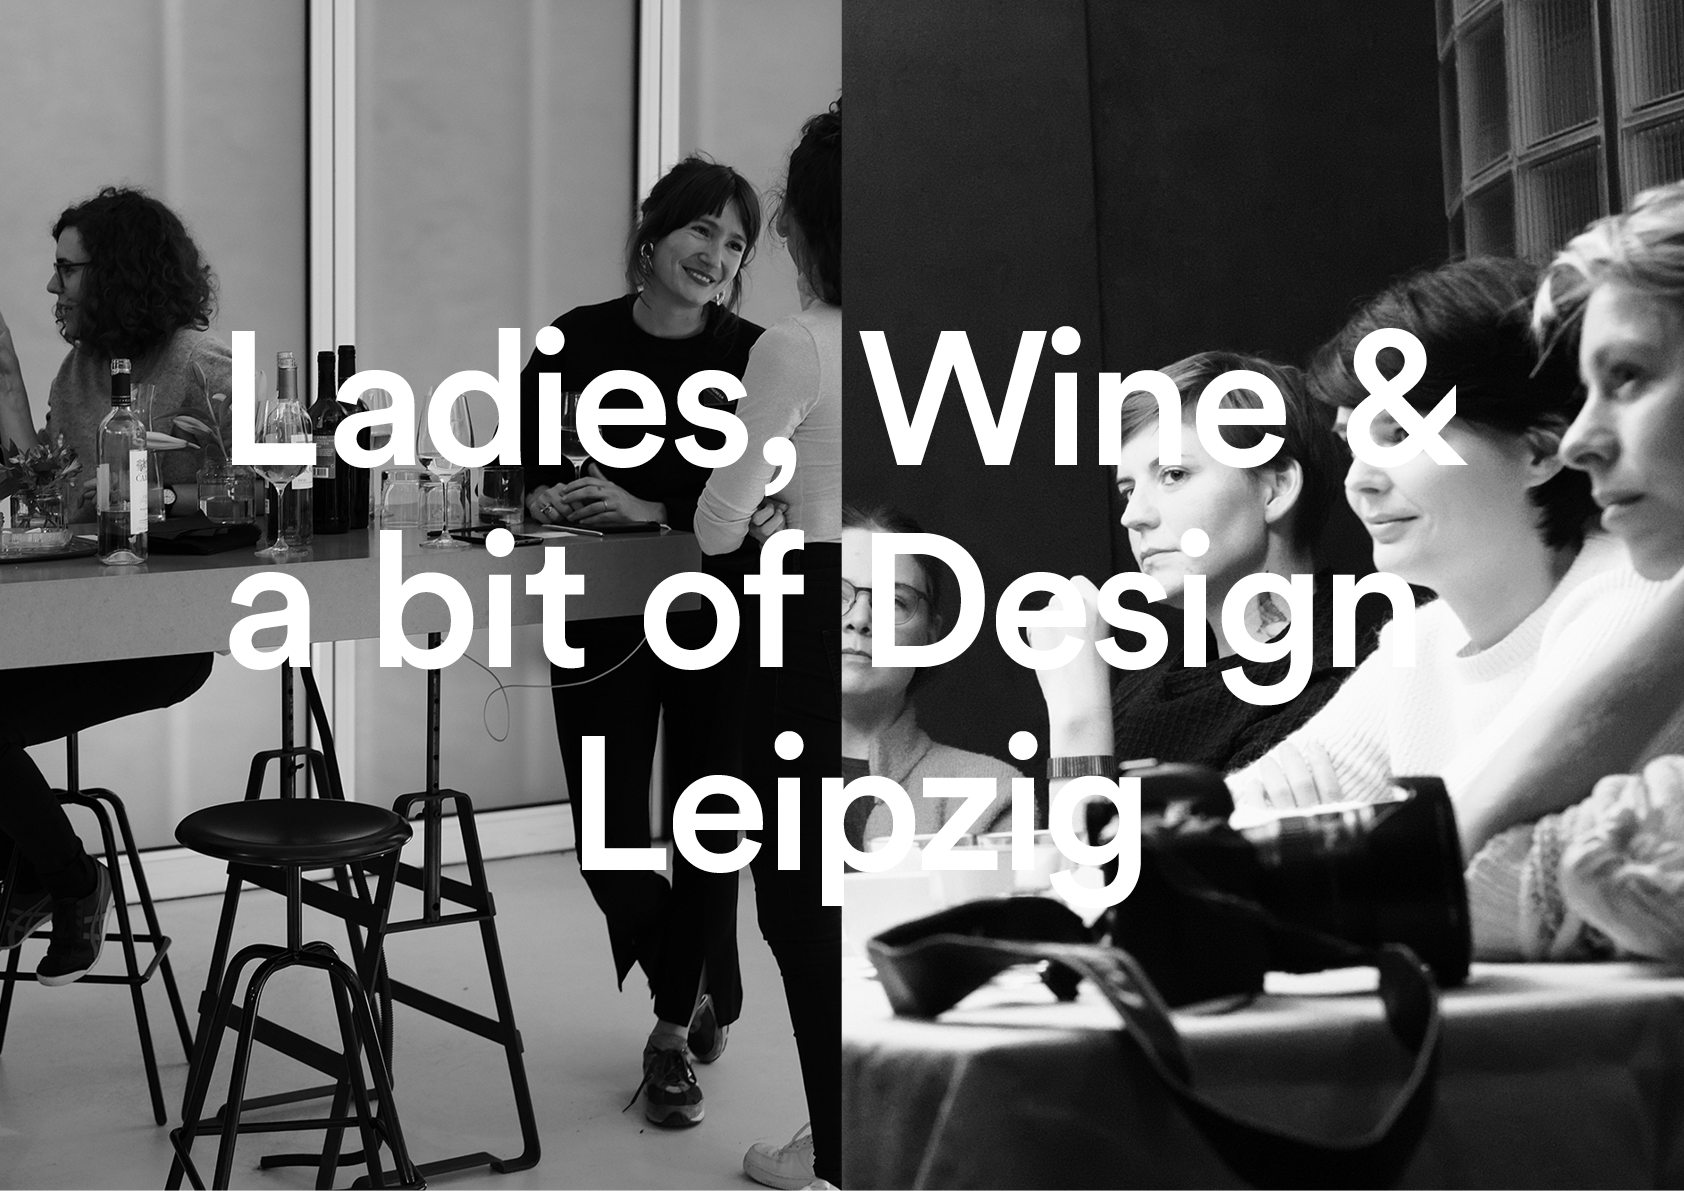 Ladies, Wine & Design Leipzig